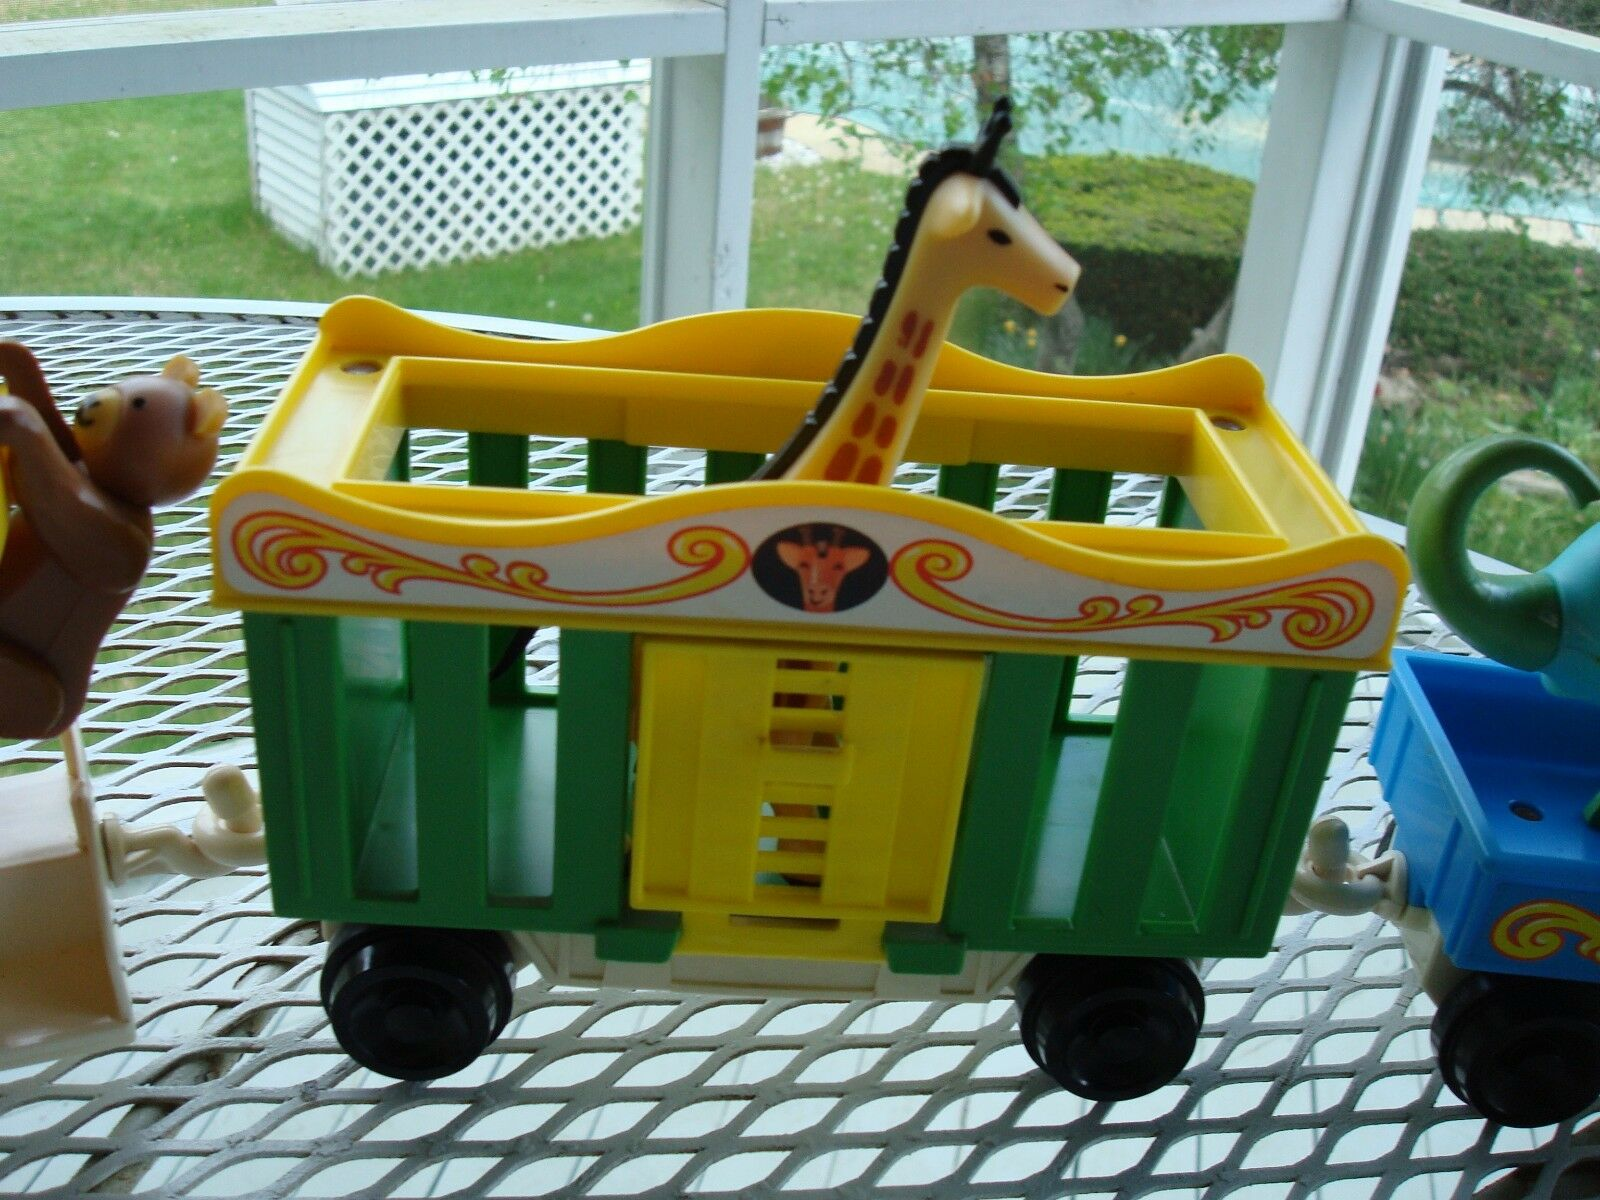 FISHER PRICE CIRCUS CIRCUS CIRCUS TRAINS ENGINE 991 AND SET AND ANOTHER CIRCUS TRAIN adc481